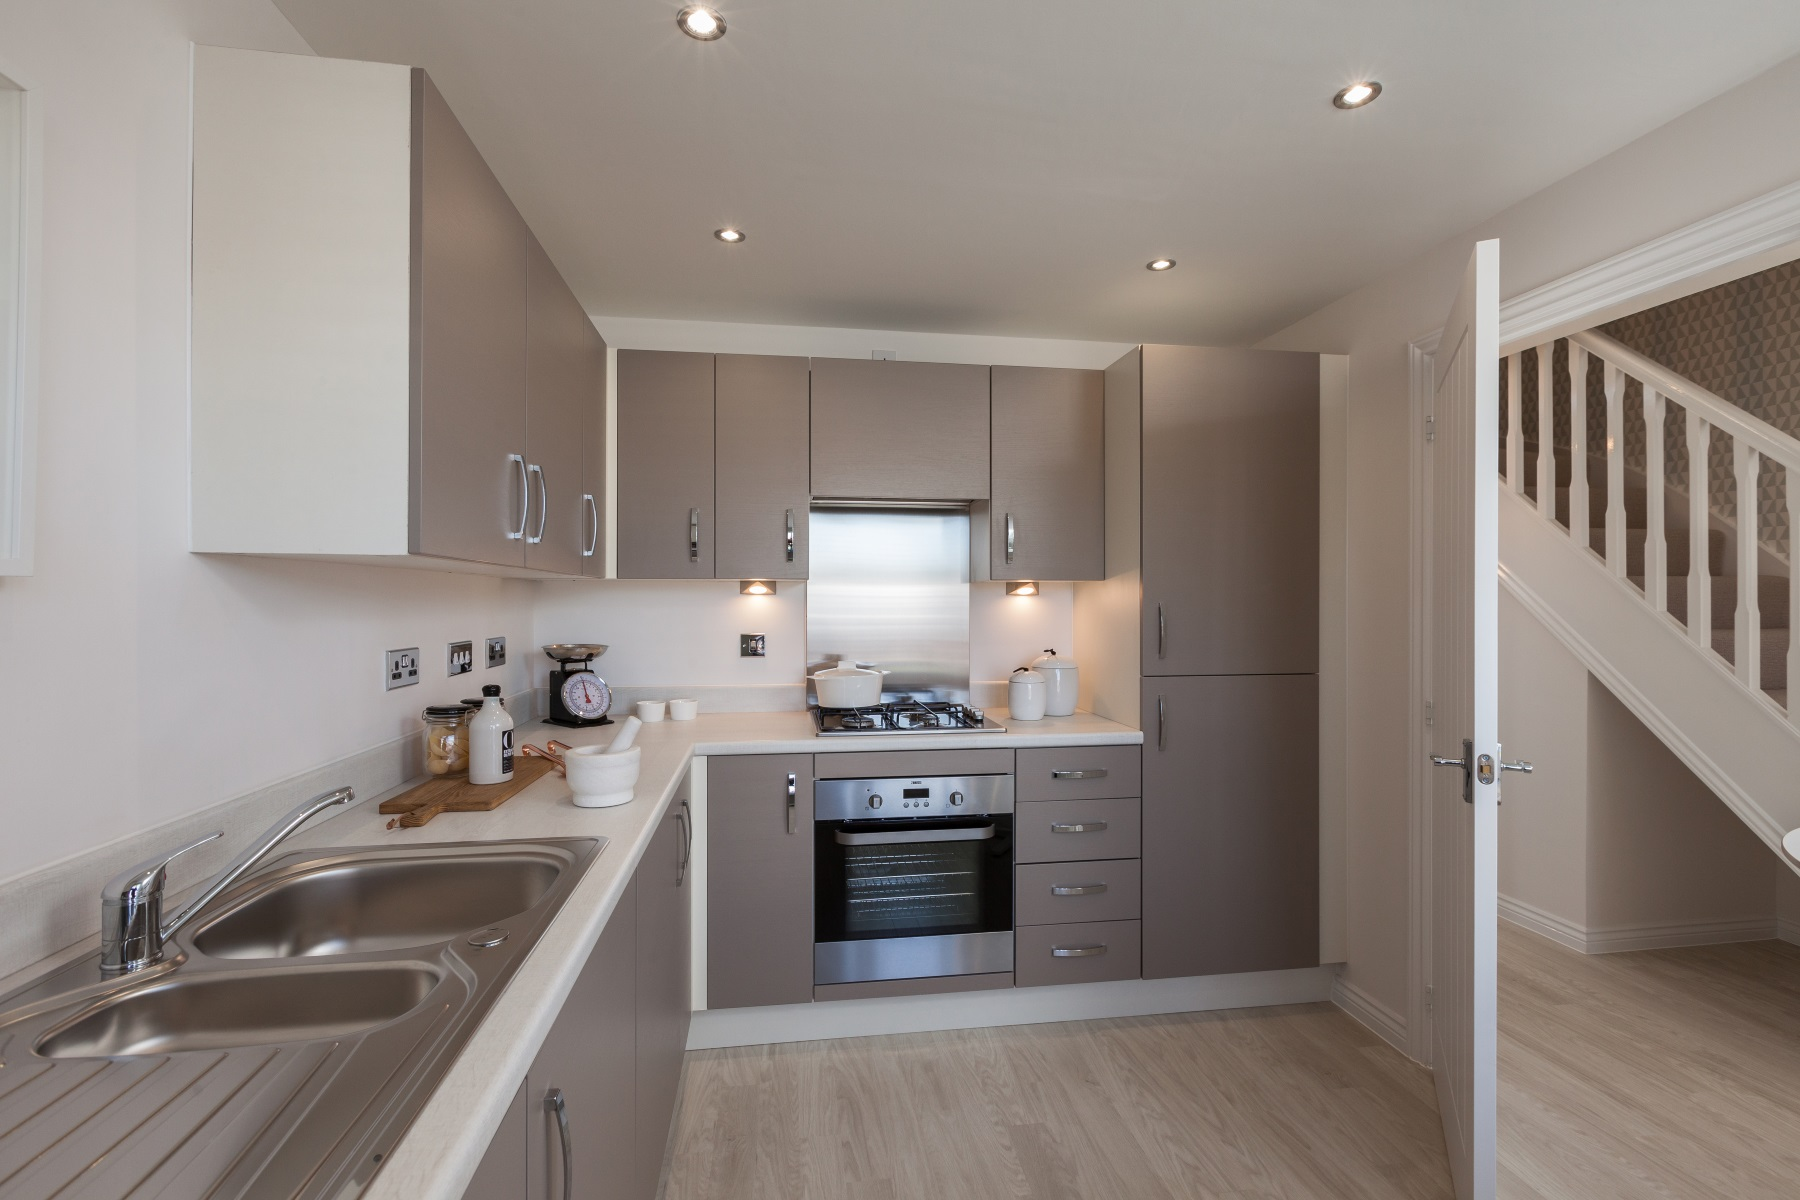 TW Exeter - Hele Park - Flatford example kitchen